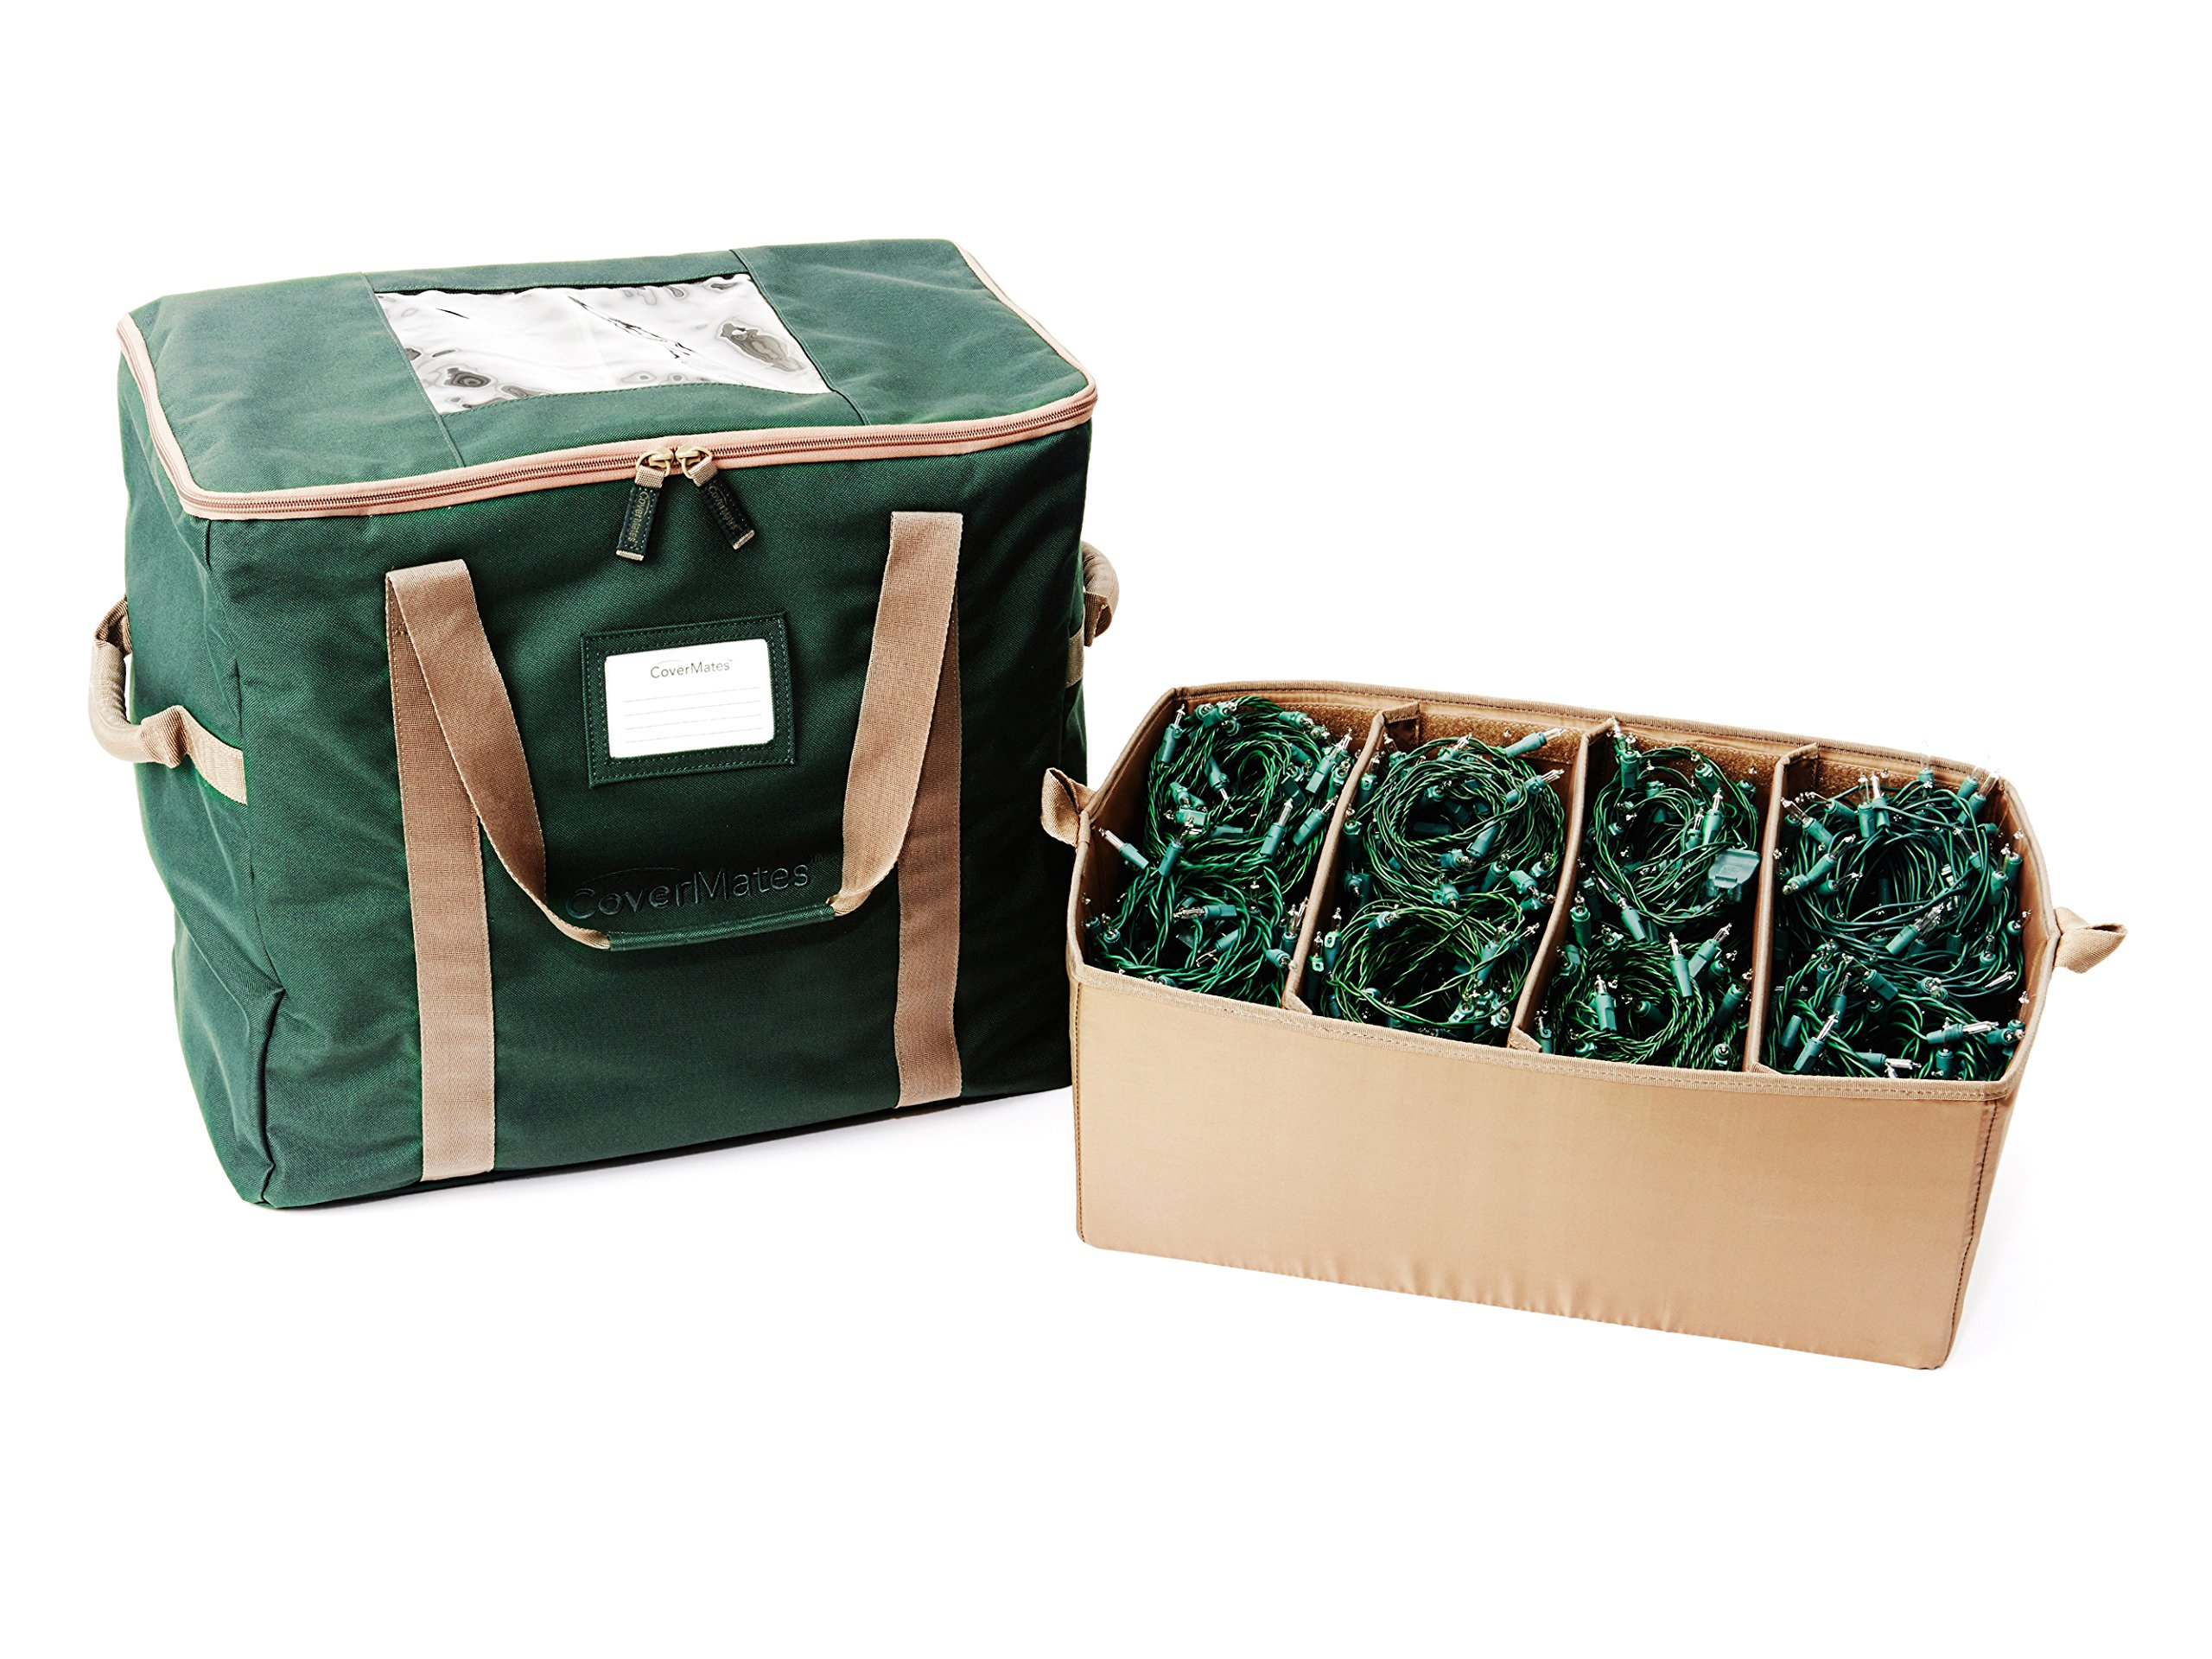 CoverMates – 18'' Holiday LightKeeper Storage Bag – Holds up 32 Light Stands – 3 Year Warranty- Green